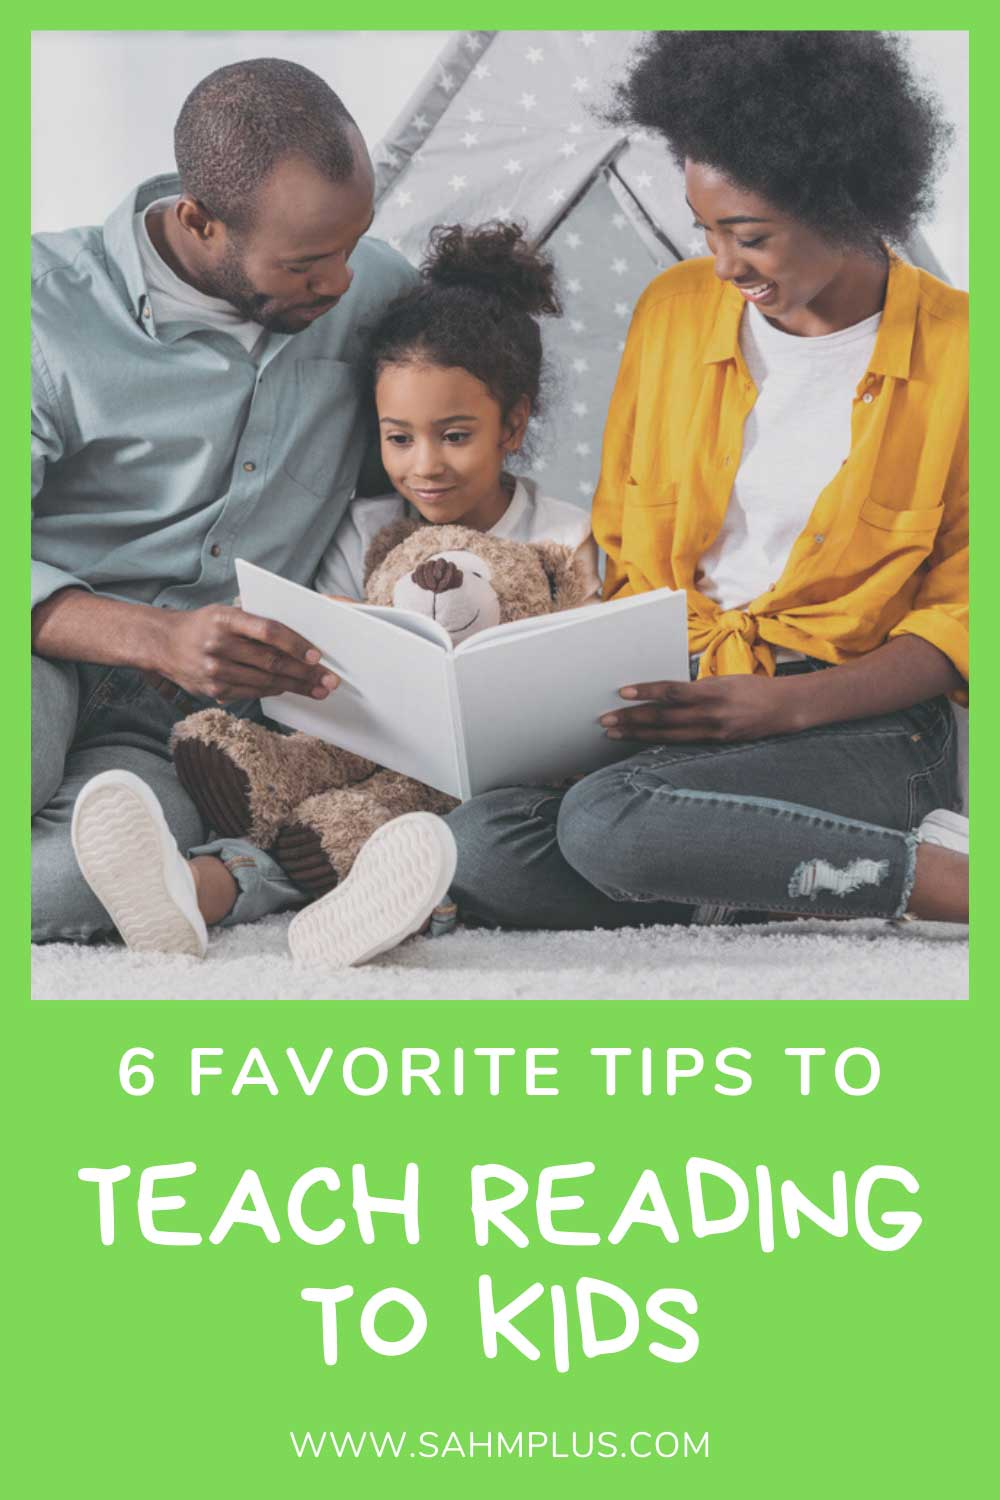 My favorite tips to teach a child to read!  How to teach reading to kids of any age - start early and read often